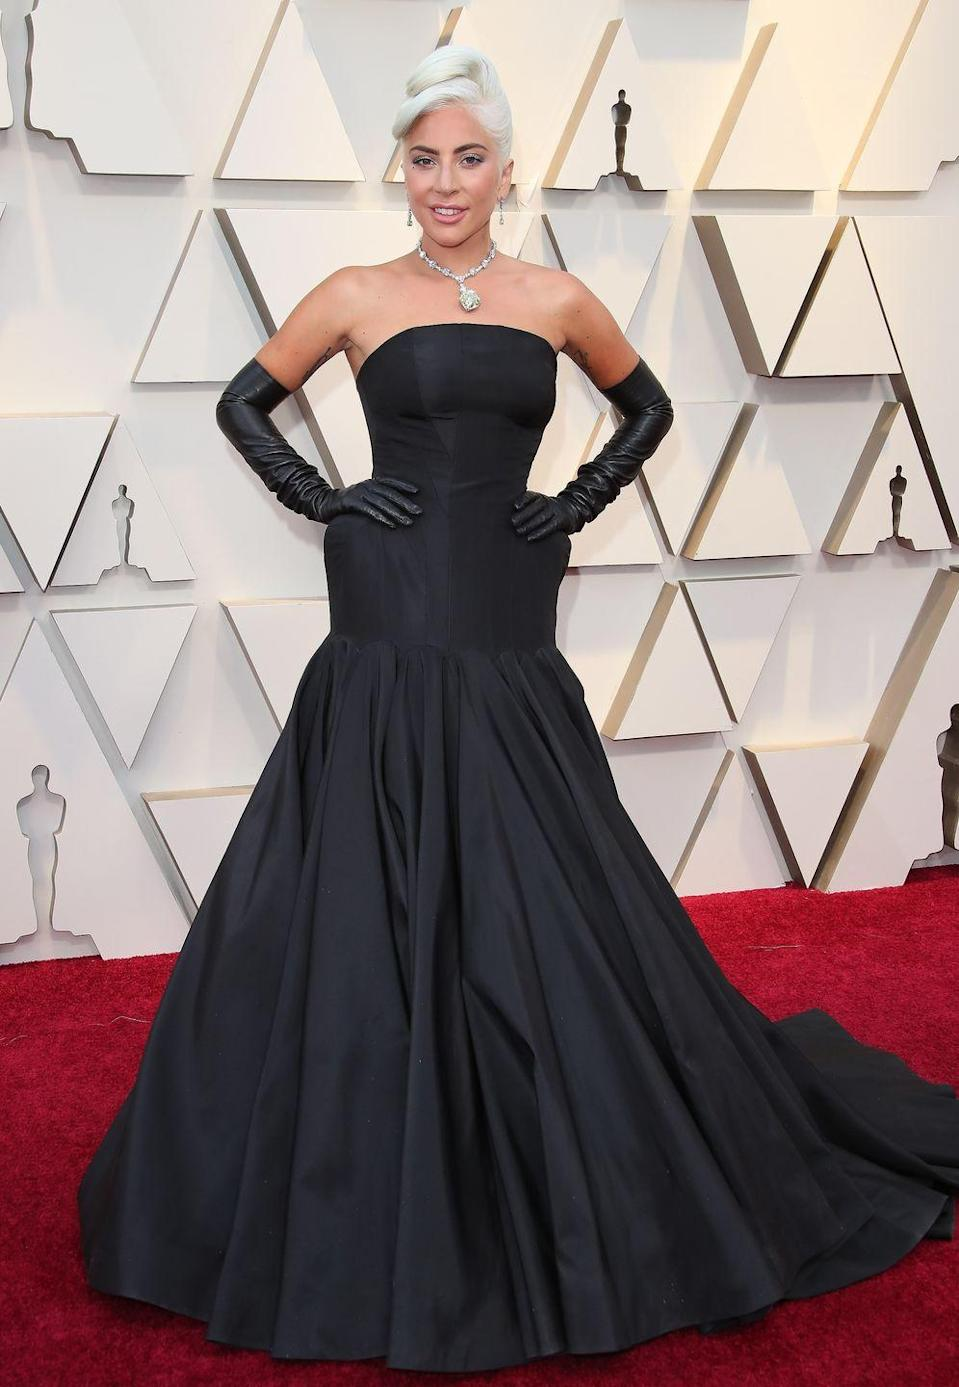 <p>Lady Gaga in Alexander McQueen. She accessorized with Tiffany & Co.'s 128.54-carat Tiffany Diamond necklace—the same one that was worn by Audrey Hepburn in promotional photos for <em>Breakfast at Tiffany's</em> in 1961.</p>